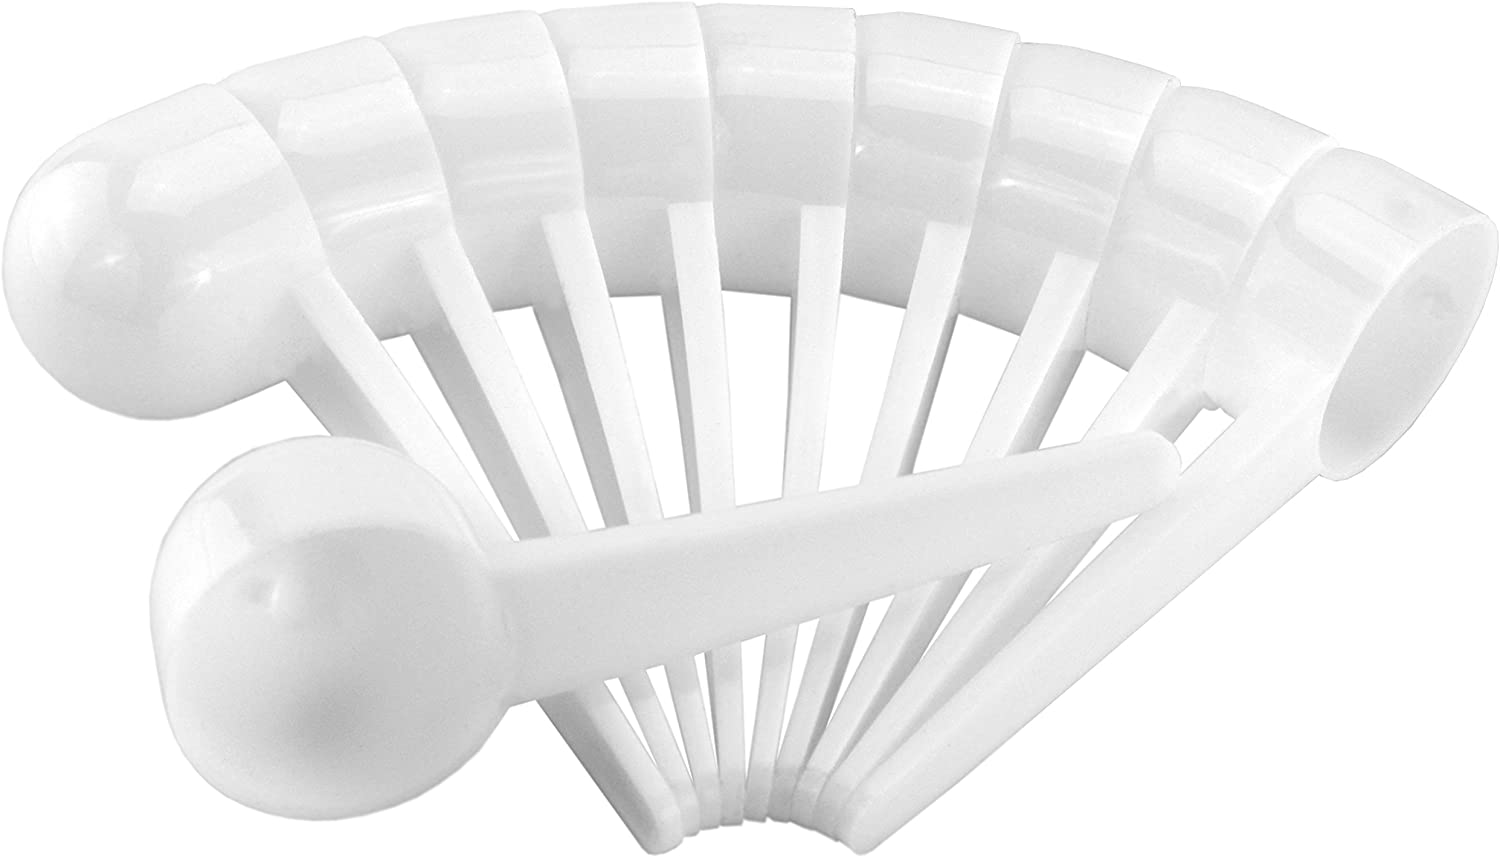 Coffee gift Scoops Tablespoon Plastic Measuring ; Ide 10-Pack Spoons Max 78% OFF